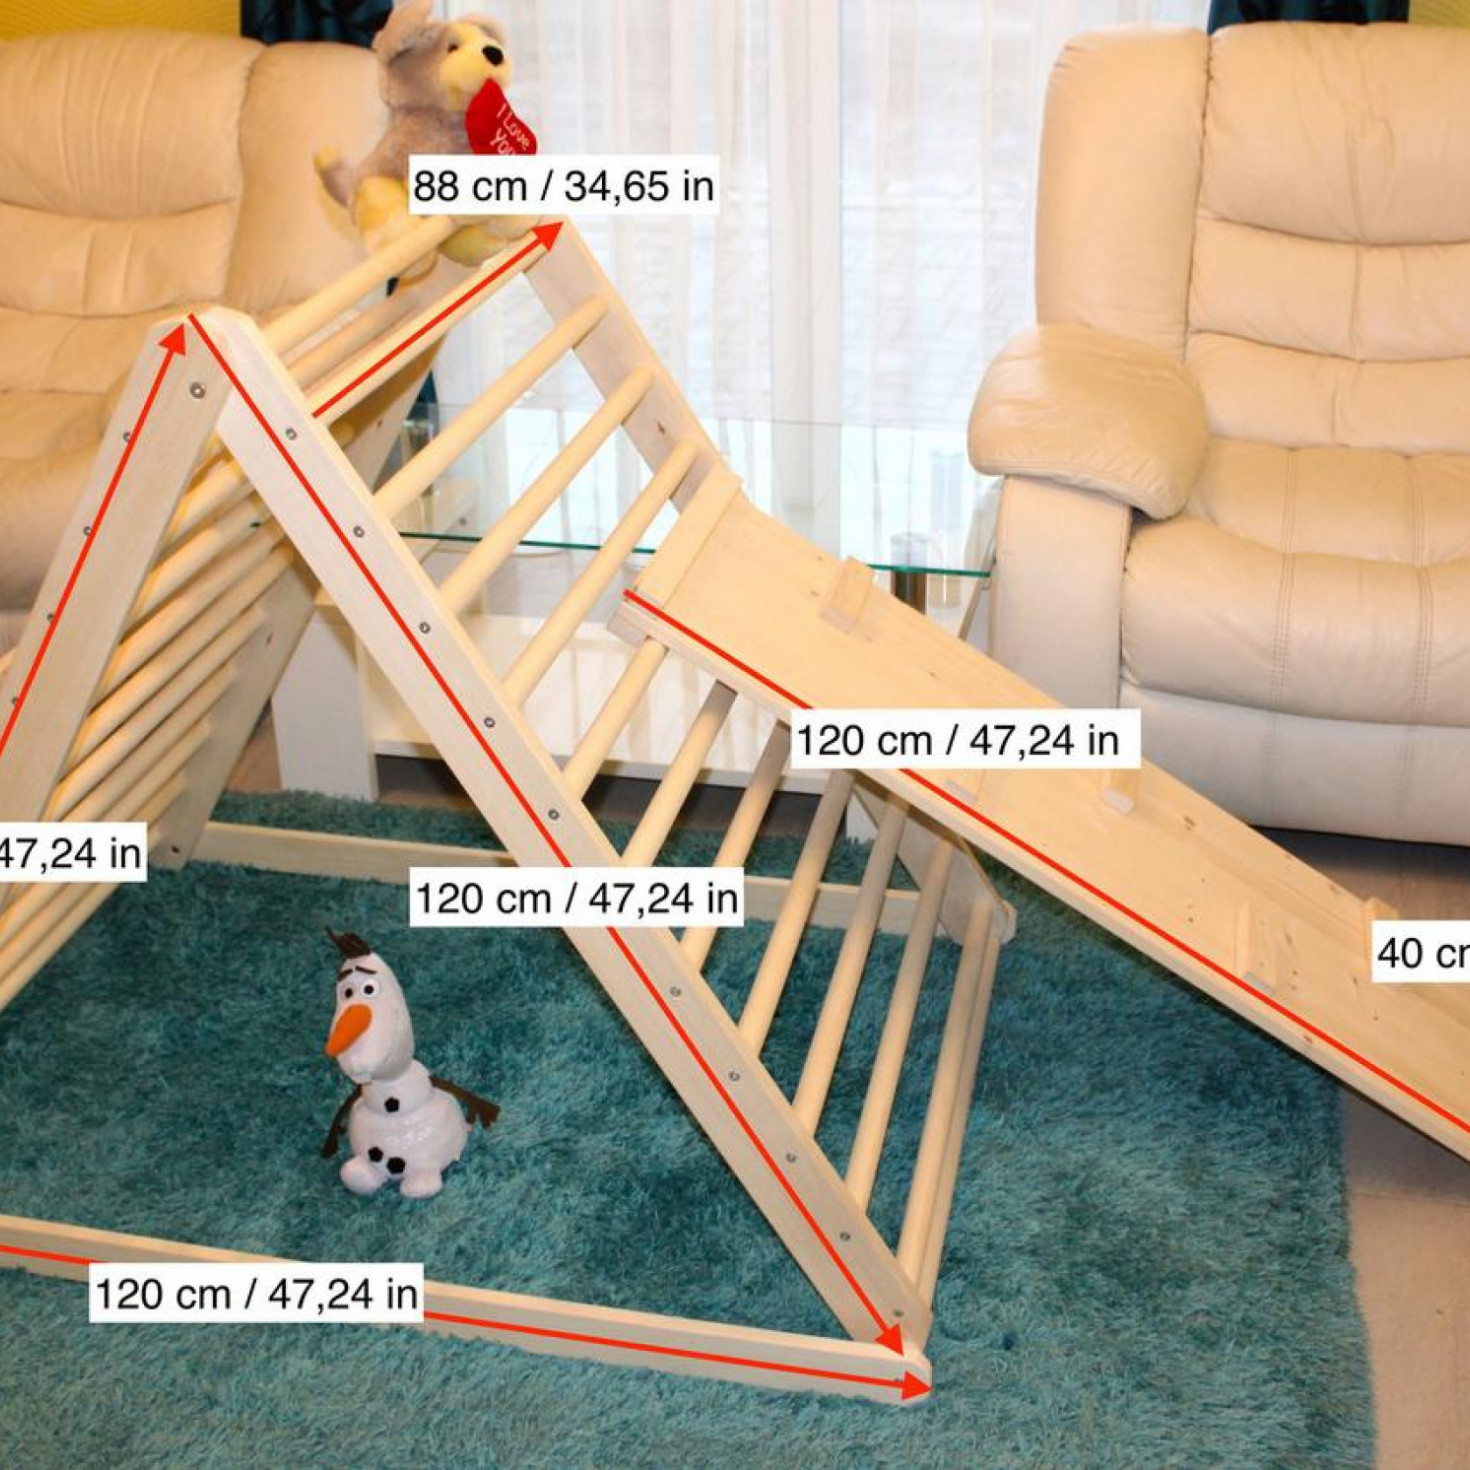 Dimensions of a triangle climber toy